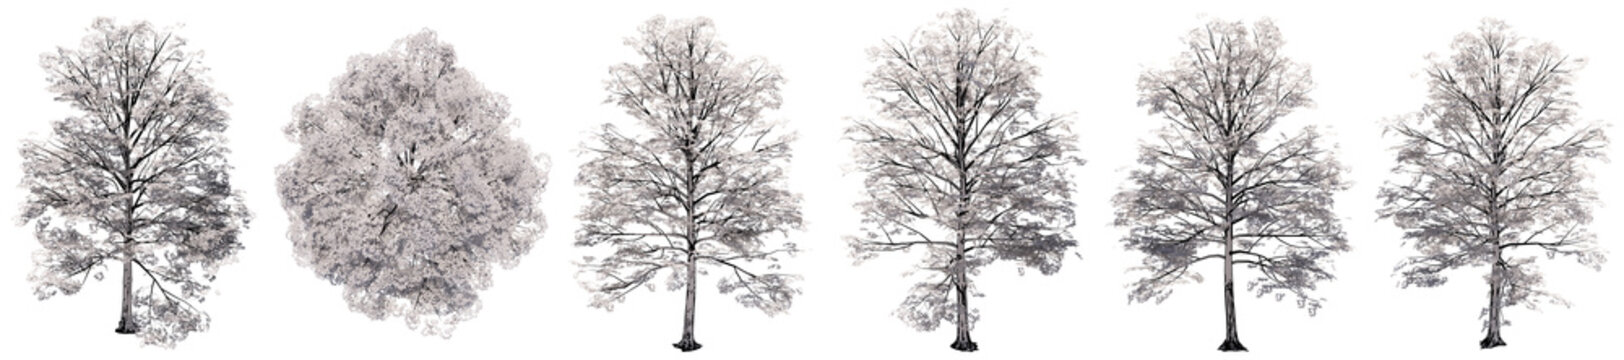 Set or collection of drawings of Elm trees isolated on white background . Concept or conceptual 3d illustration for nature, ecology and conservation, strength and endurance, force and life